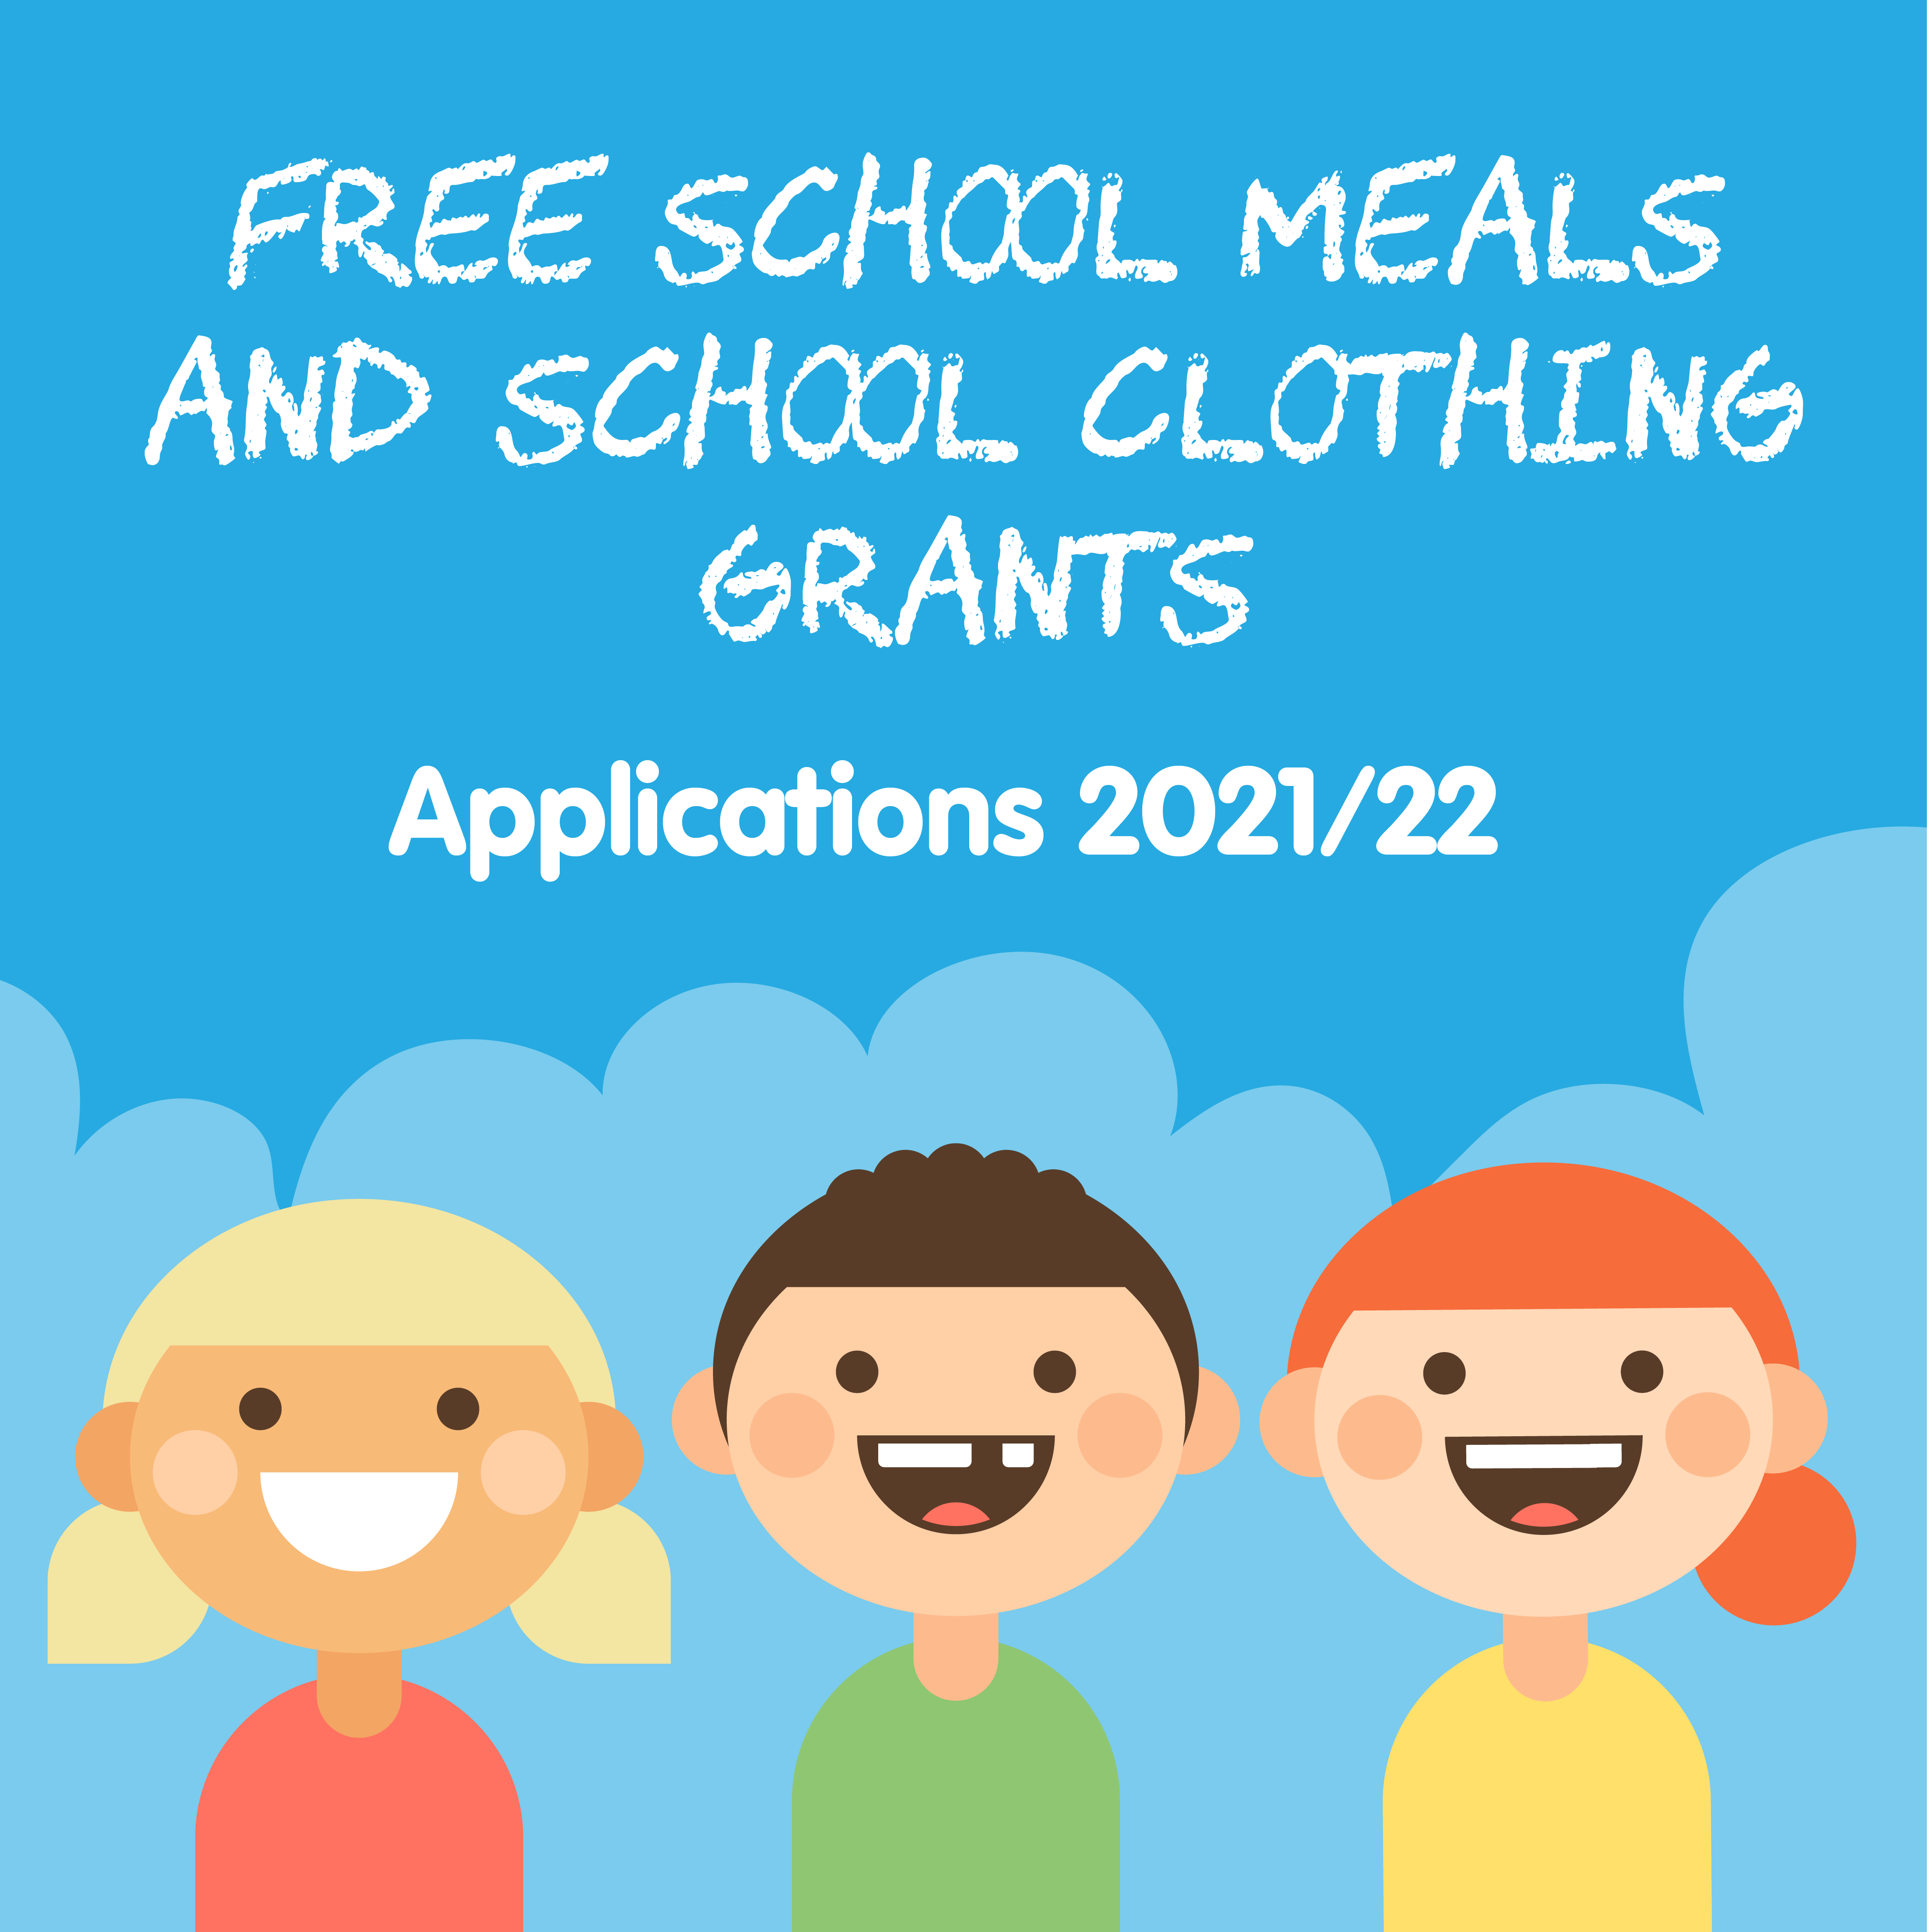 Free School Meals & School Clothing Grant applications 2021/22 - Smiling children